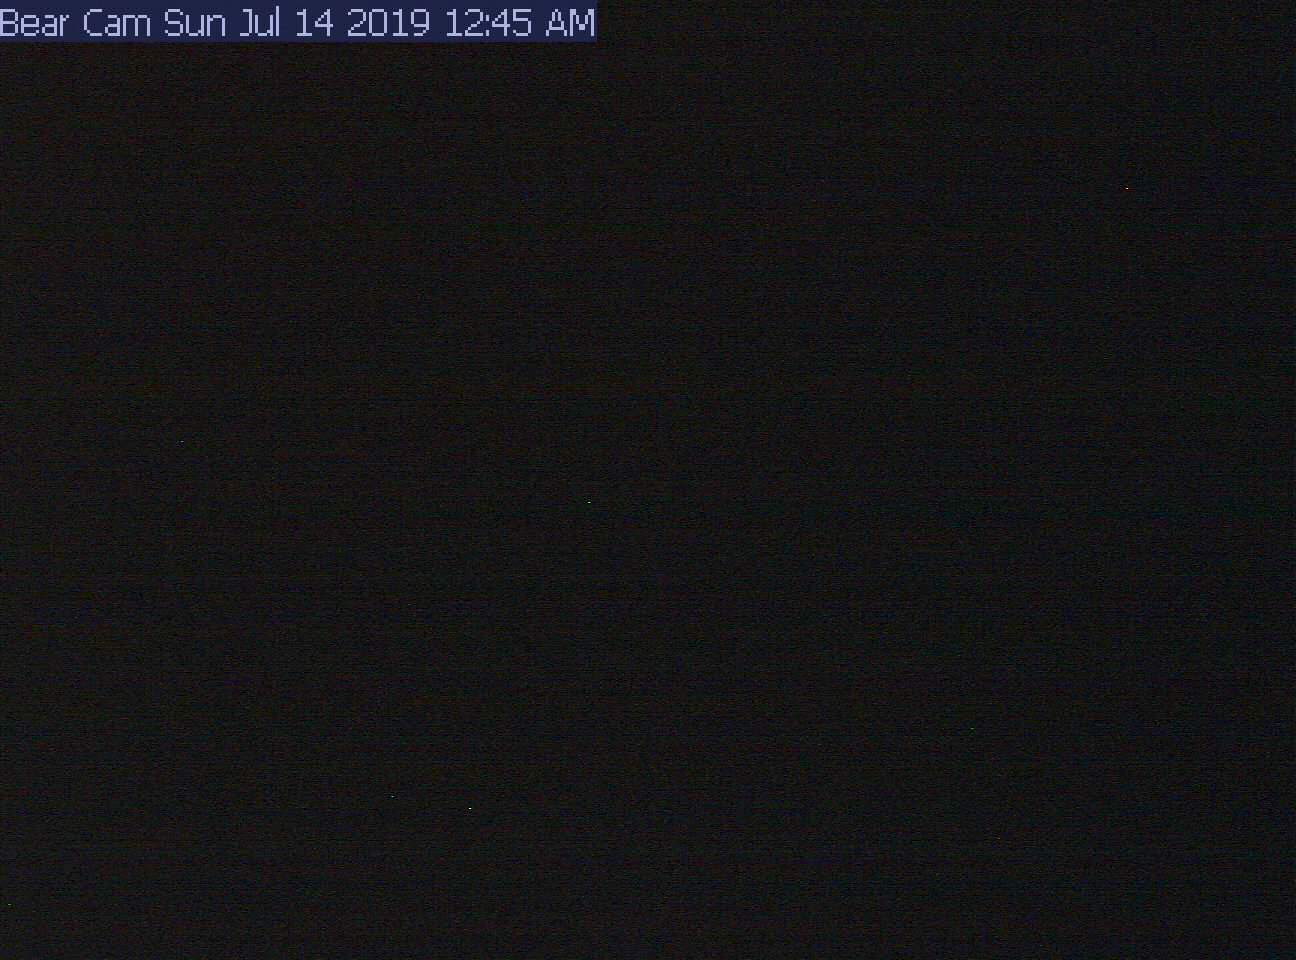 Brundage Mid Mountain Webcam Image